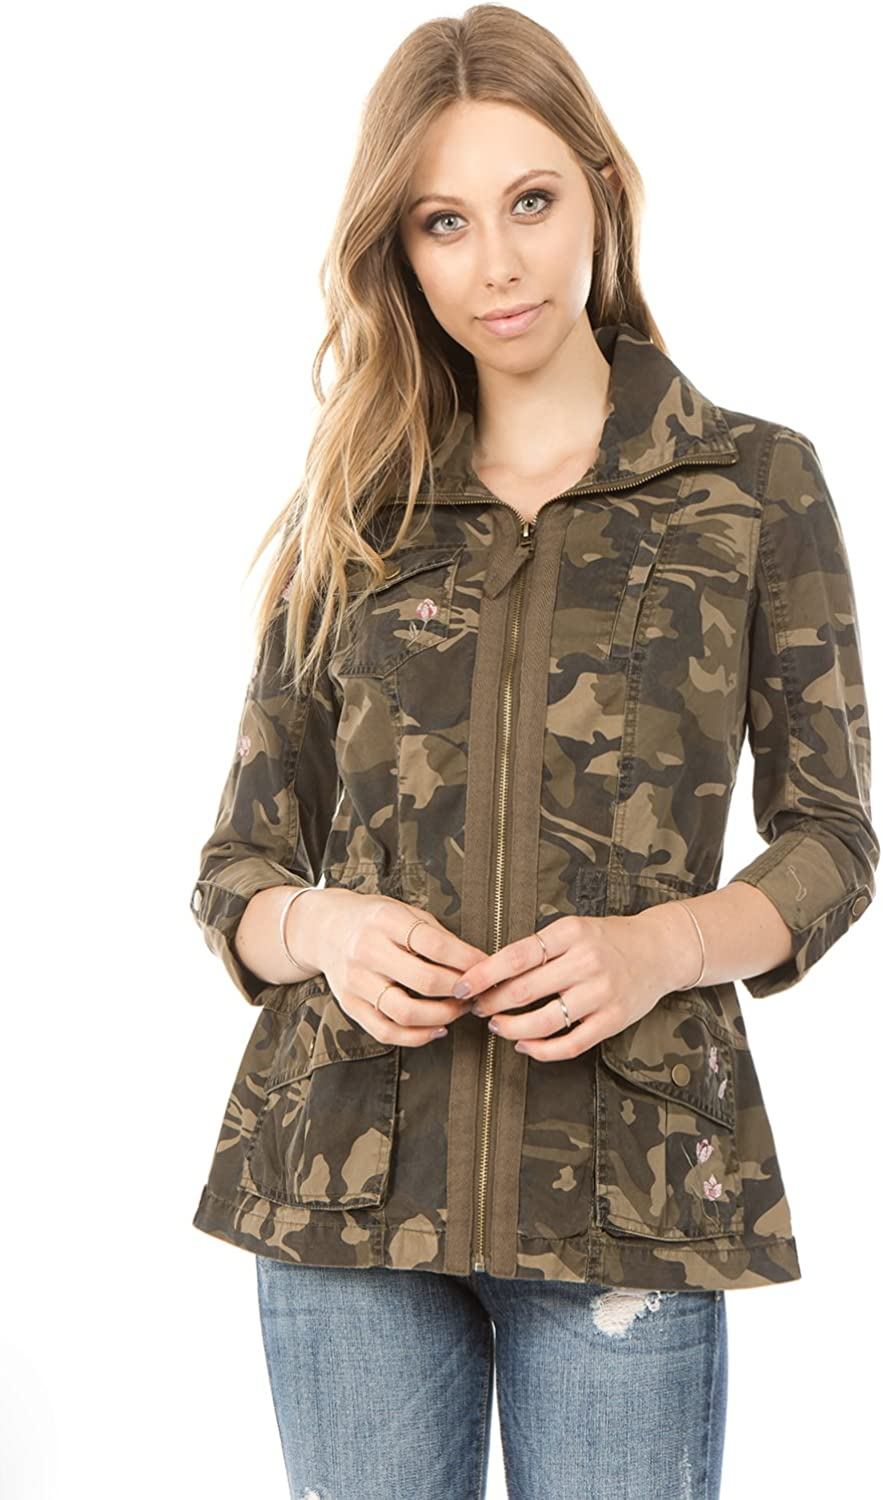 Ashley by 26 International  Women's Camo Cotton Anorak with Floral Embroidery Detail